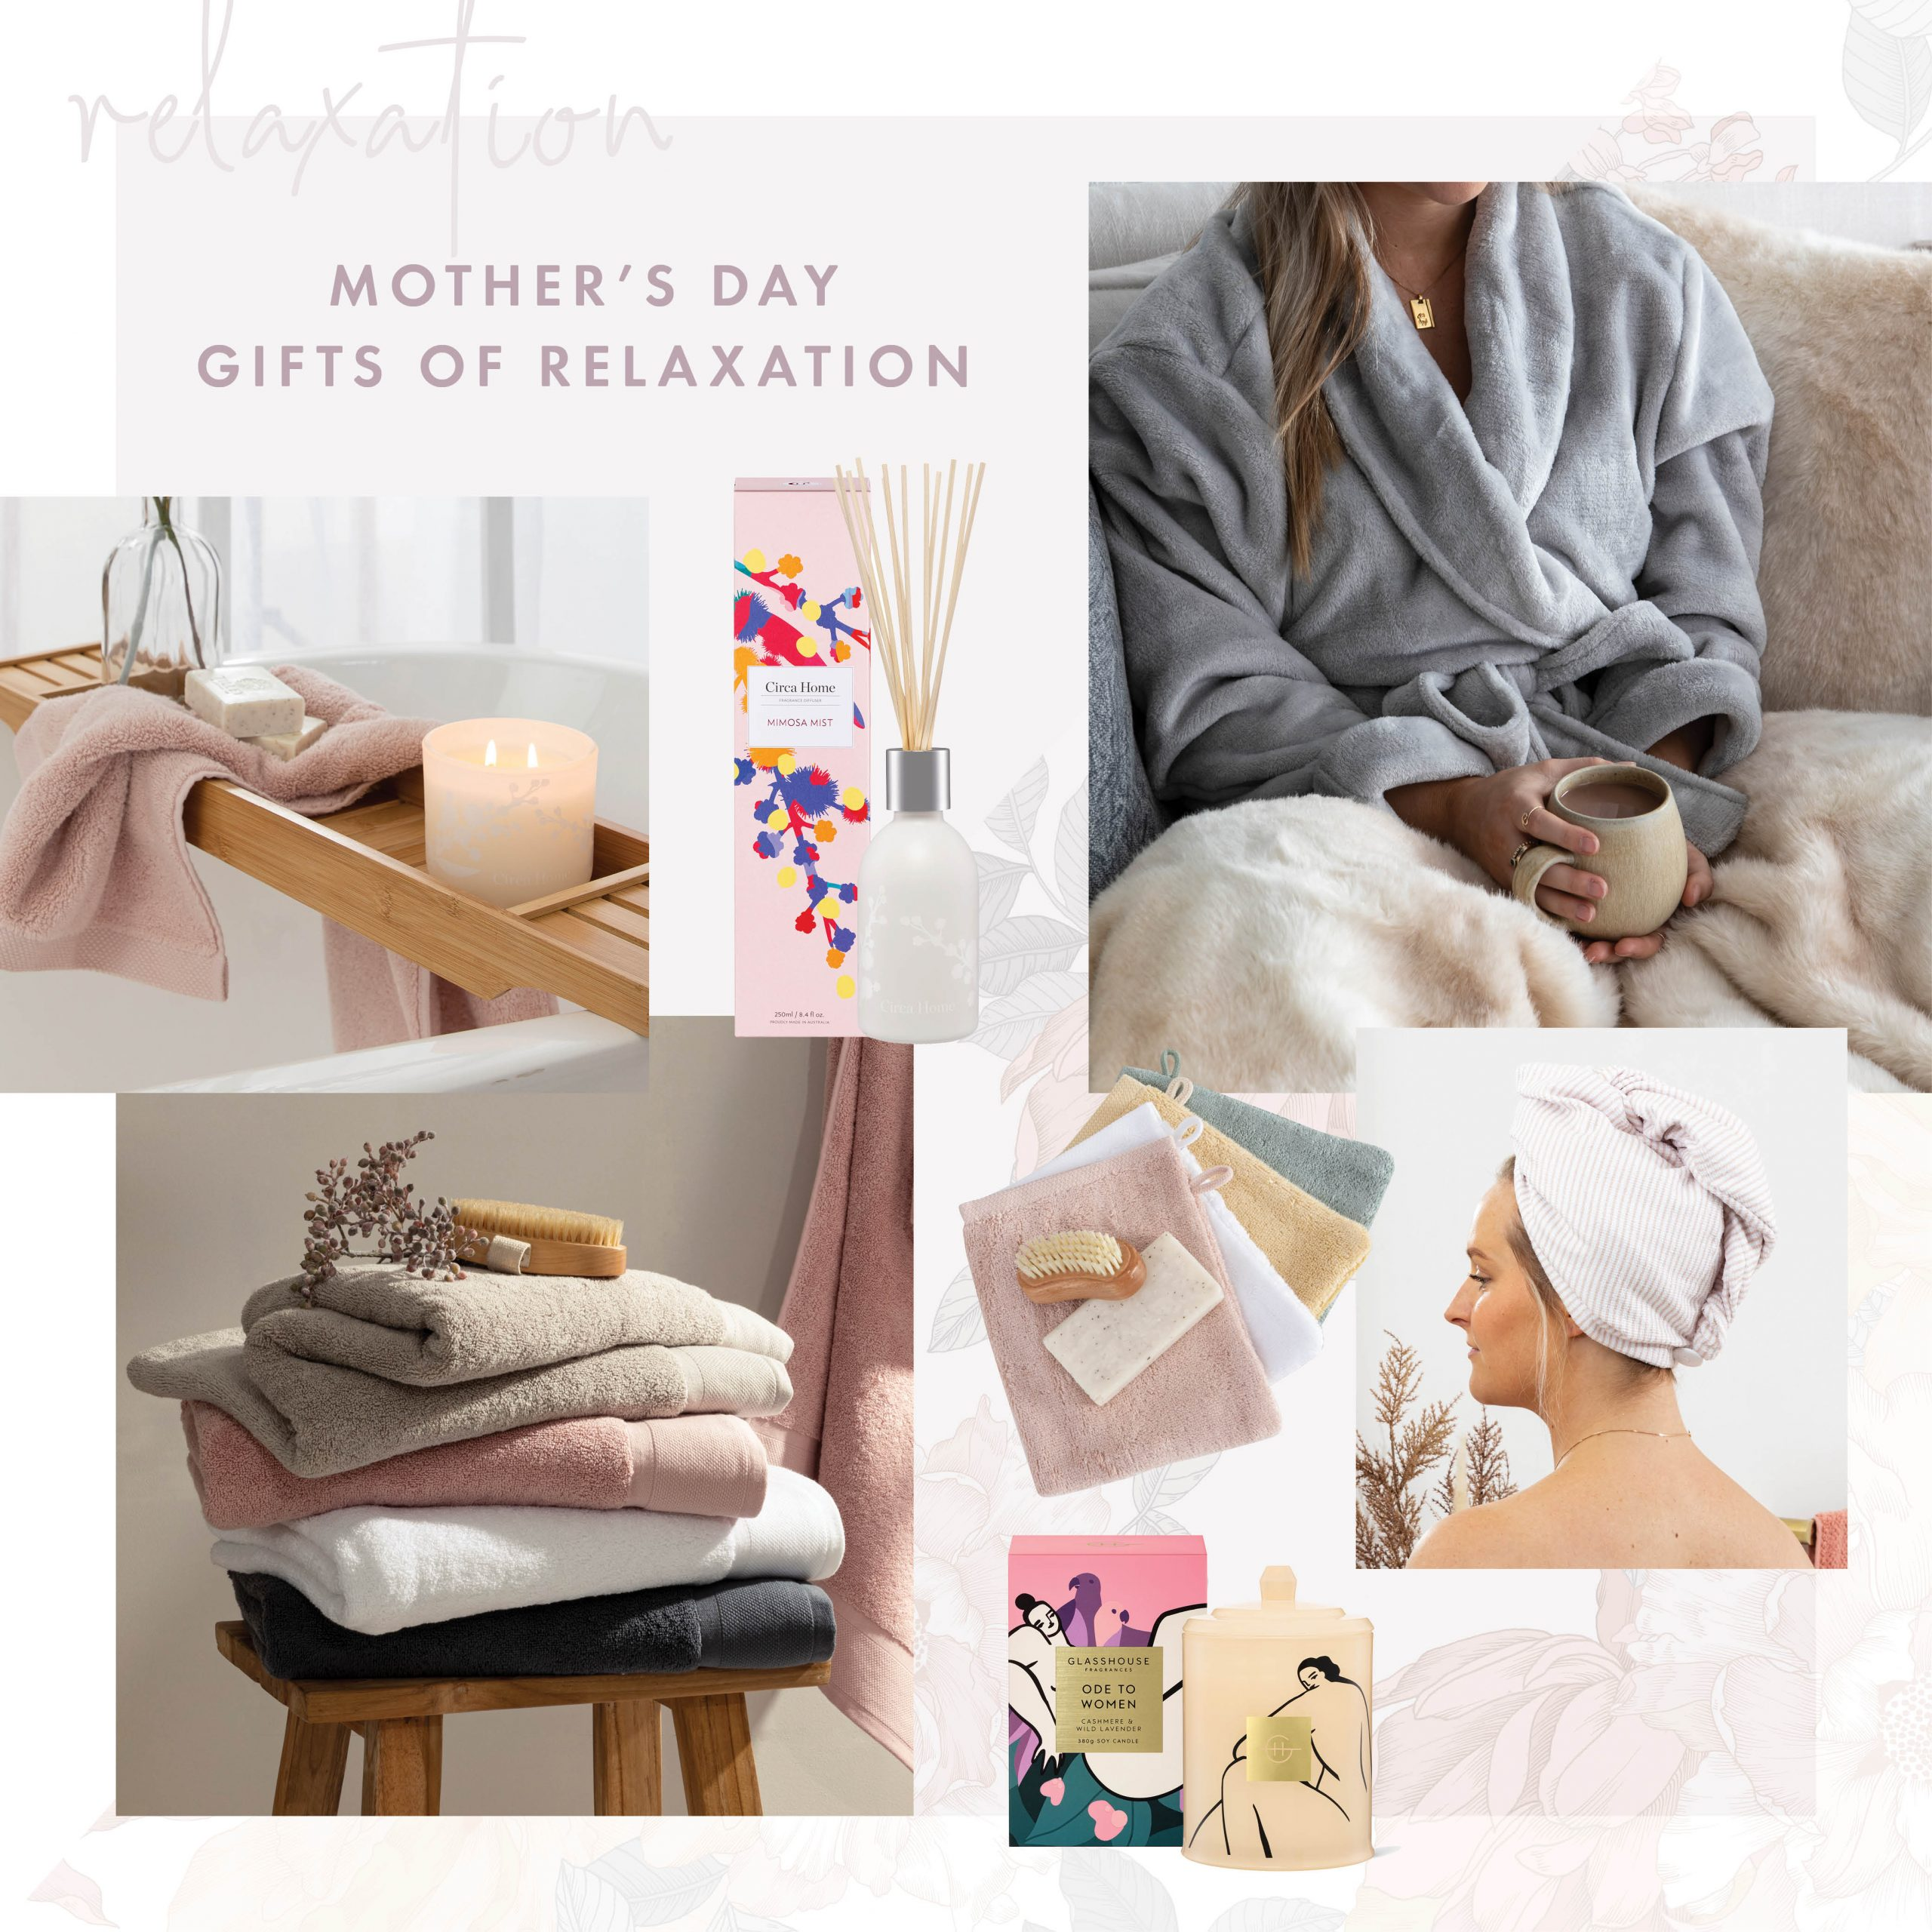 Mother's Day gift guide   Mother's Day Gift Ideas 2021   Pillow Talk